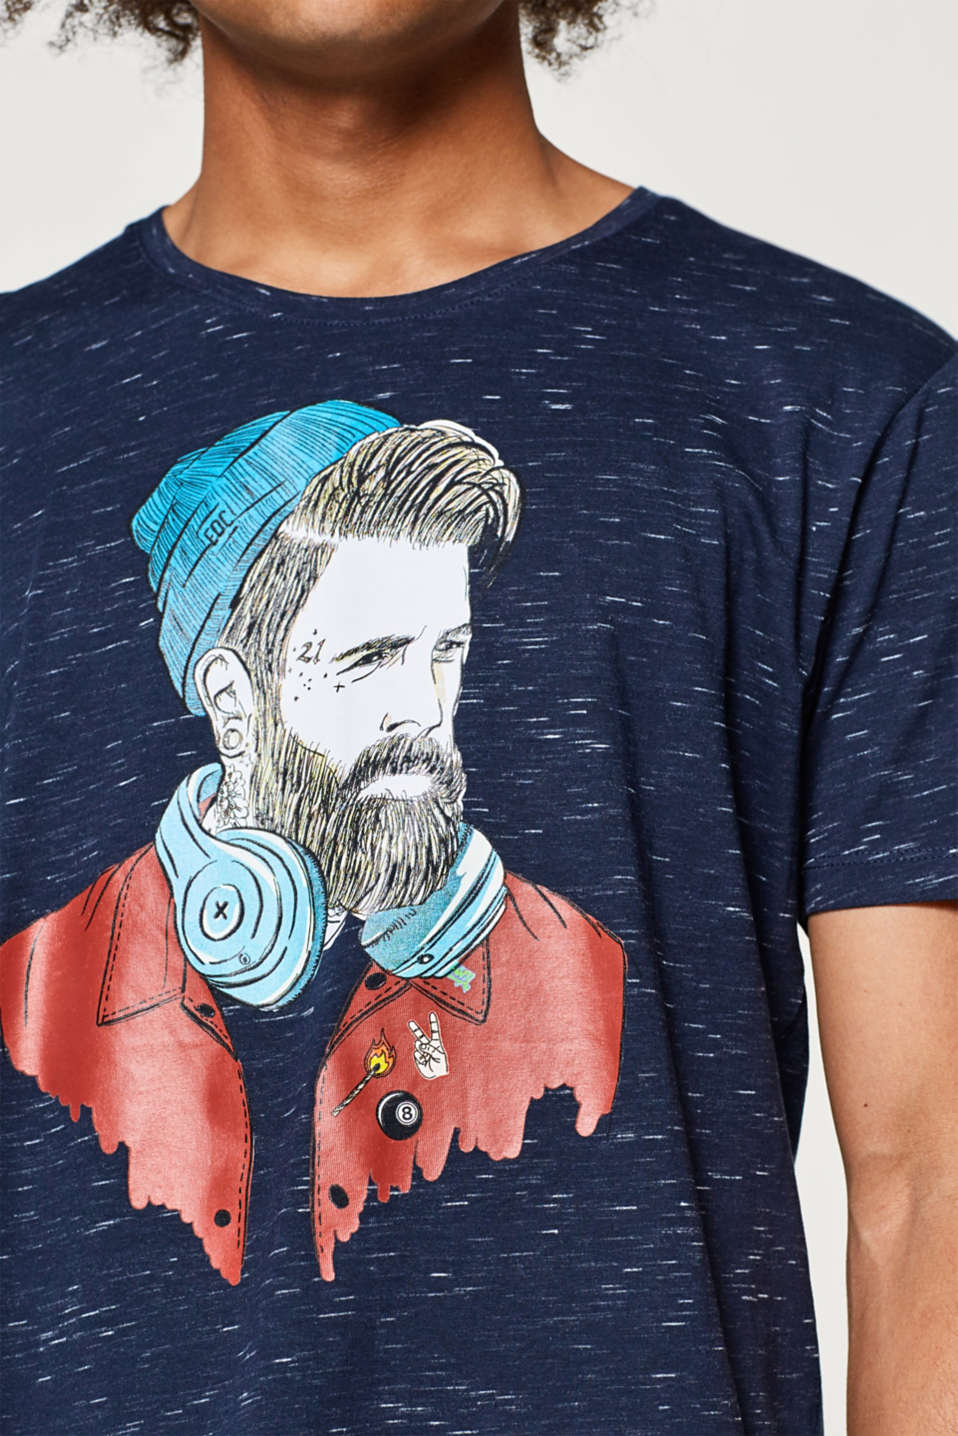 T-shirt in slub jersey with an illustration